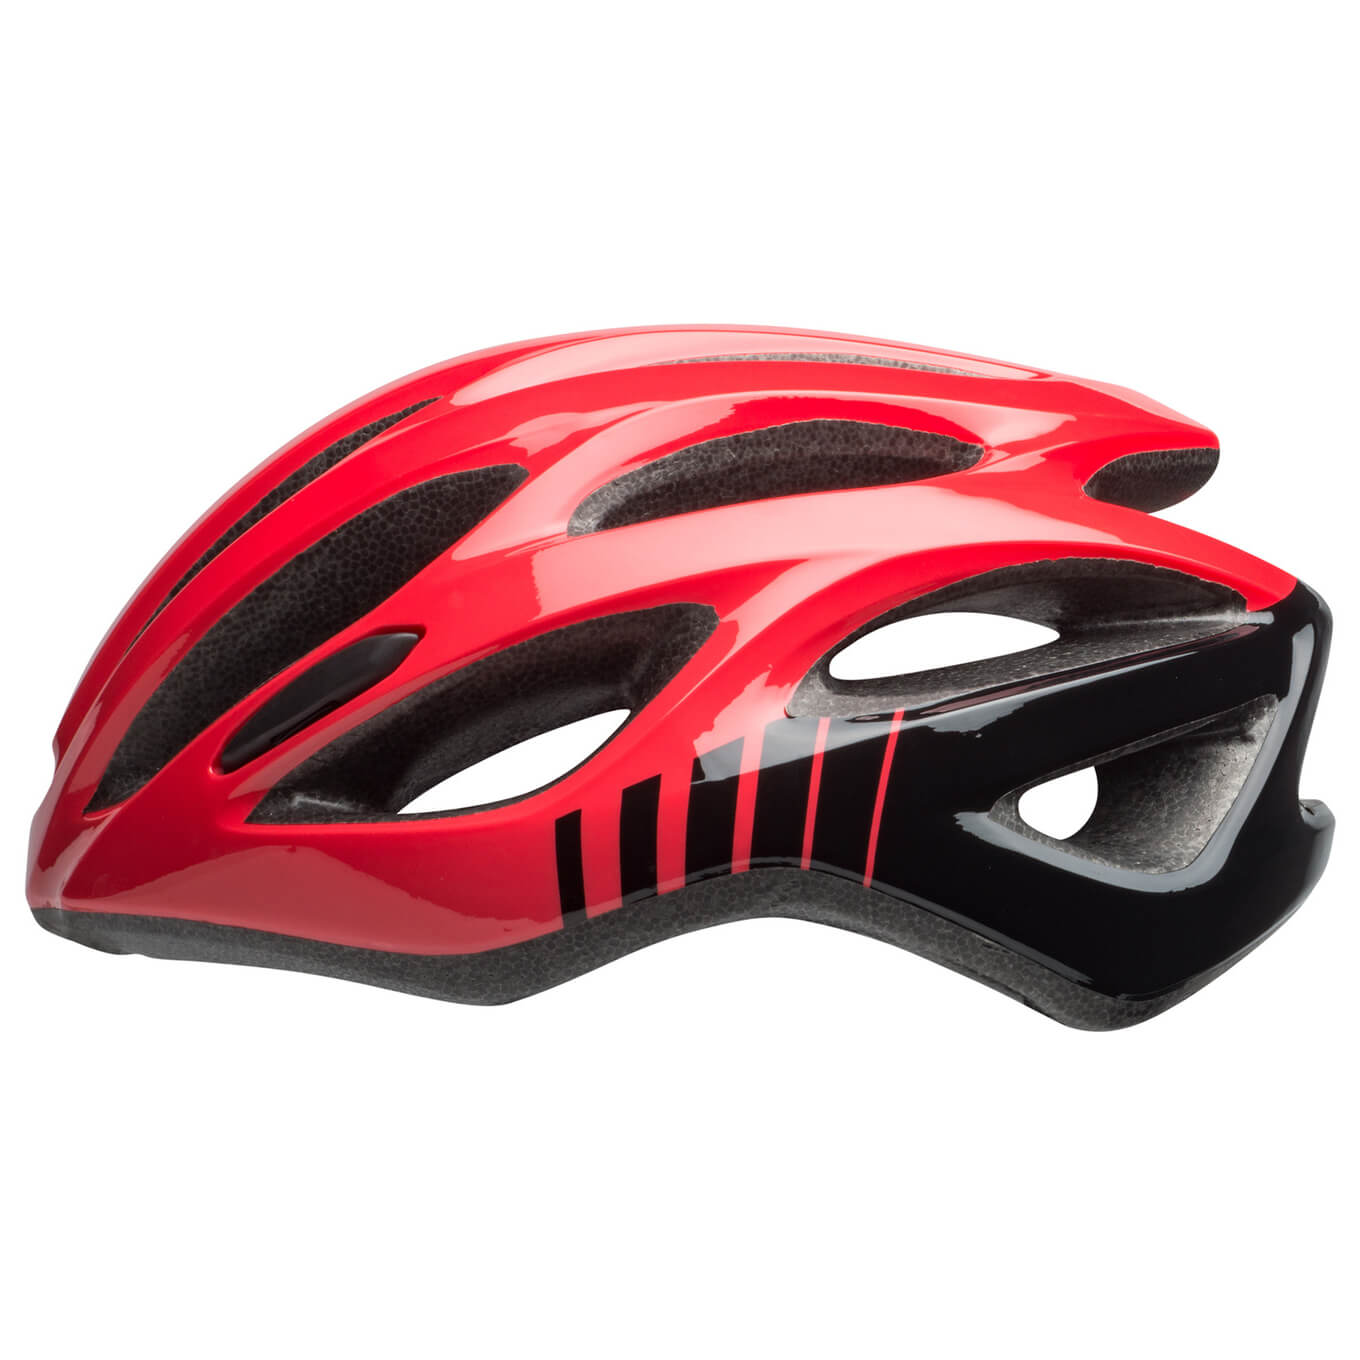 Bell Draft 17 Bicycle Helmet Buy Online Bergfreunde Eu